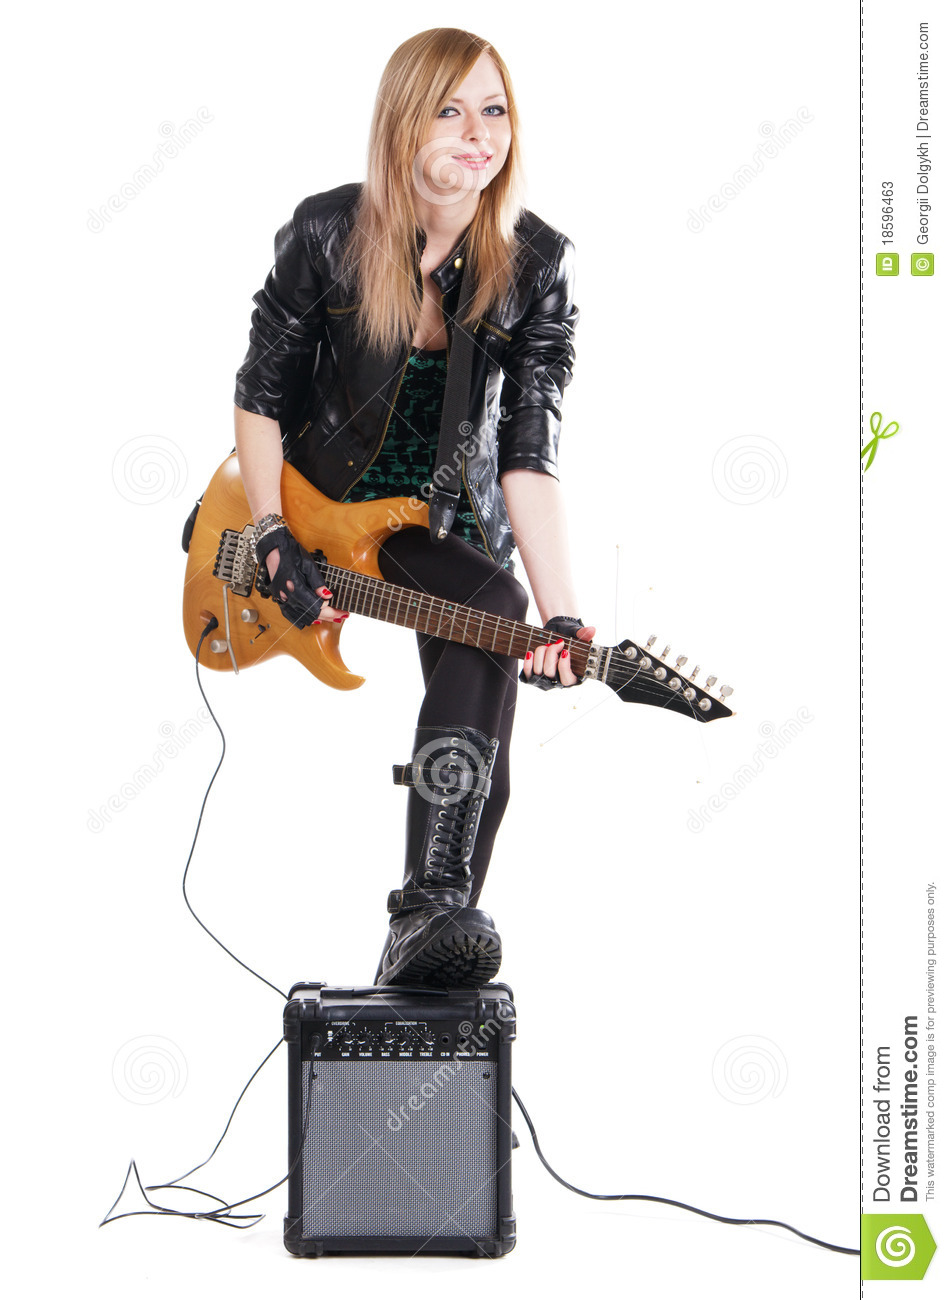 teenage girl playing electric guitar stock photos image 18596463. Black Bedroom Furniture Sets. Home Design Ideas